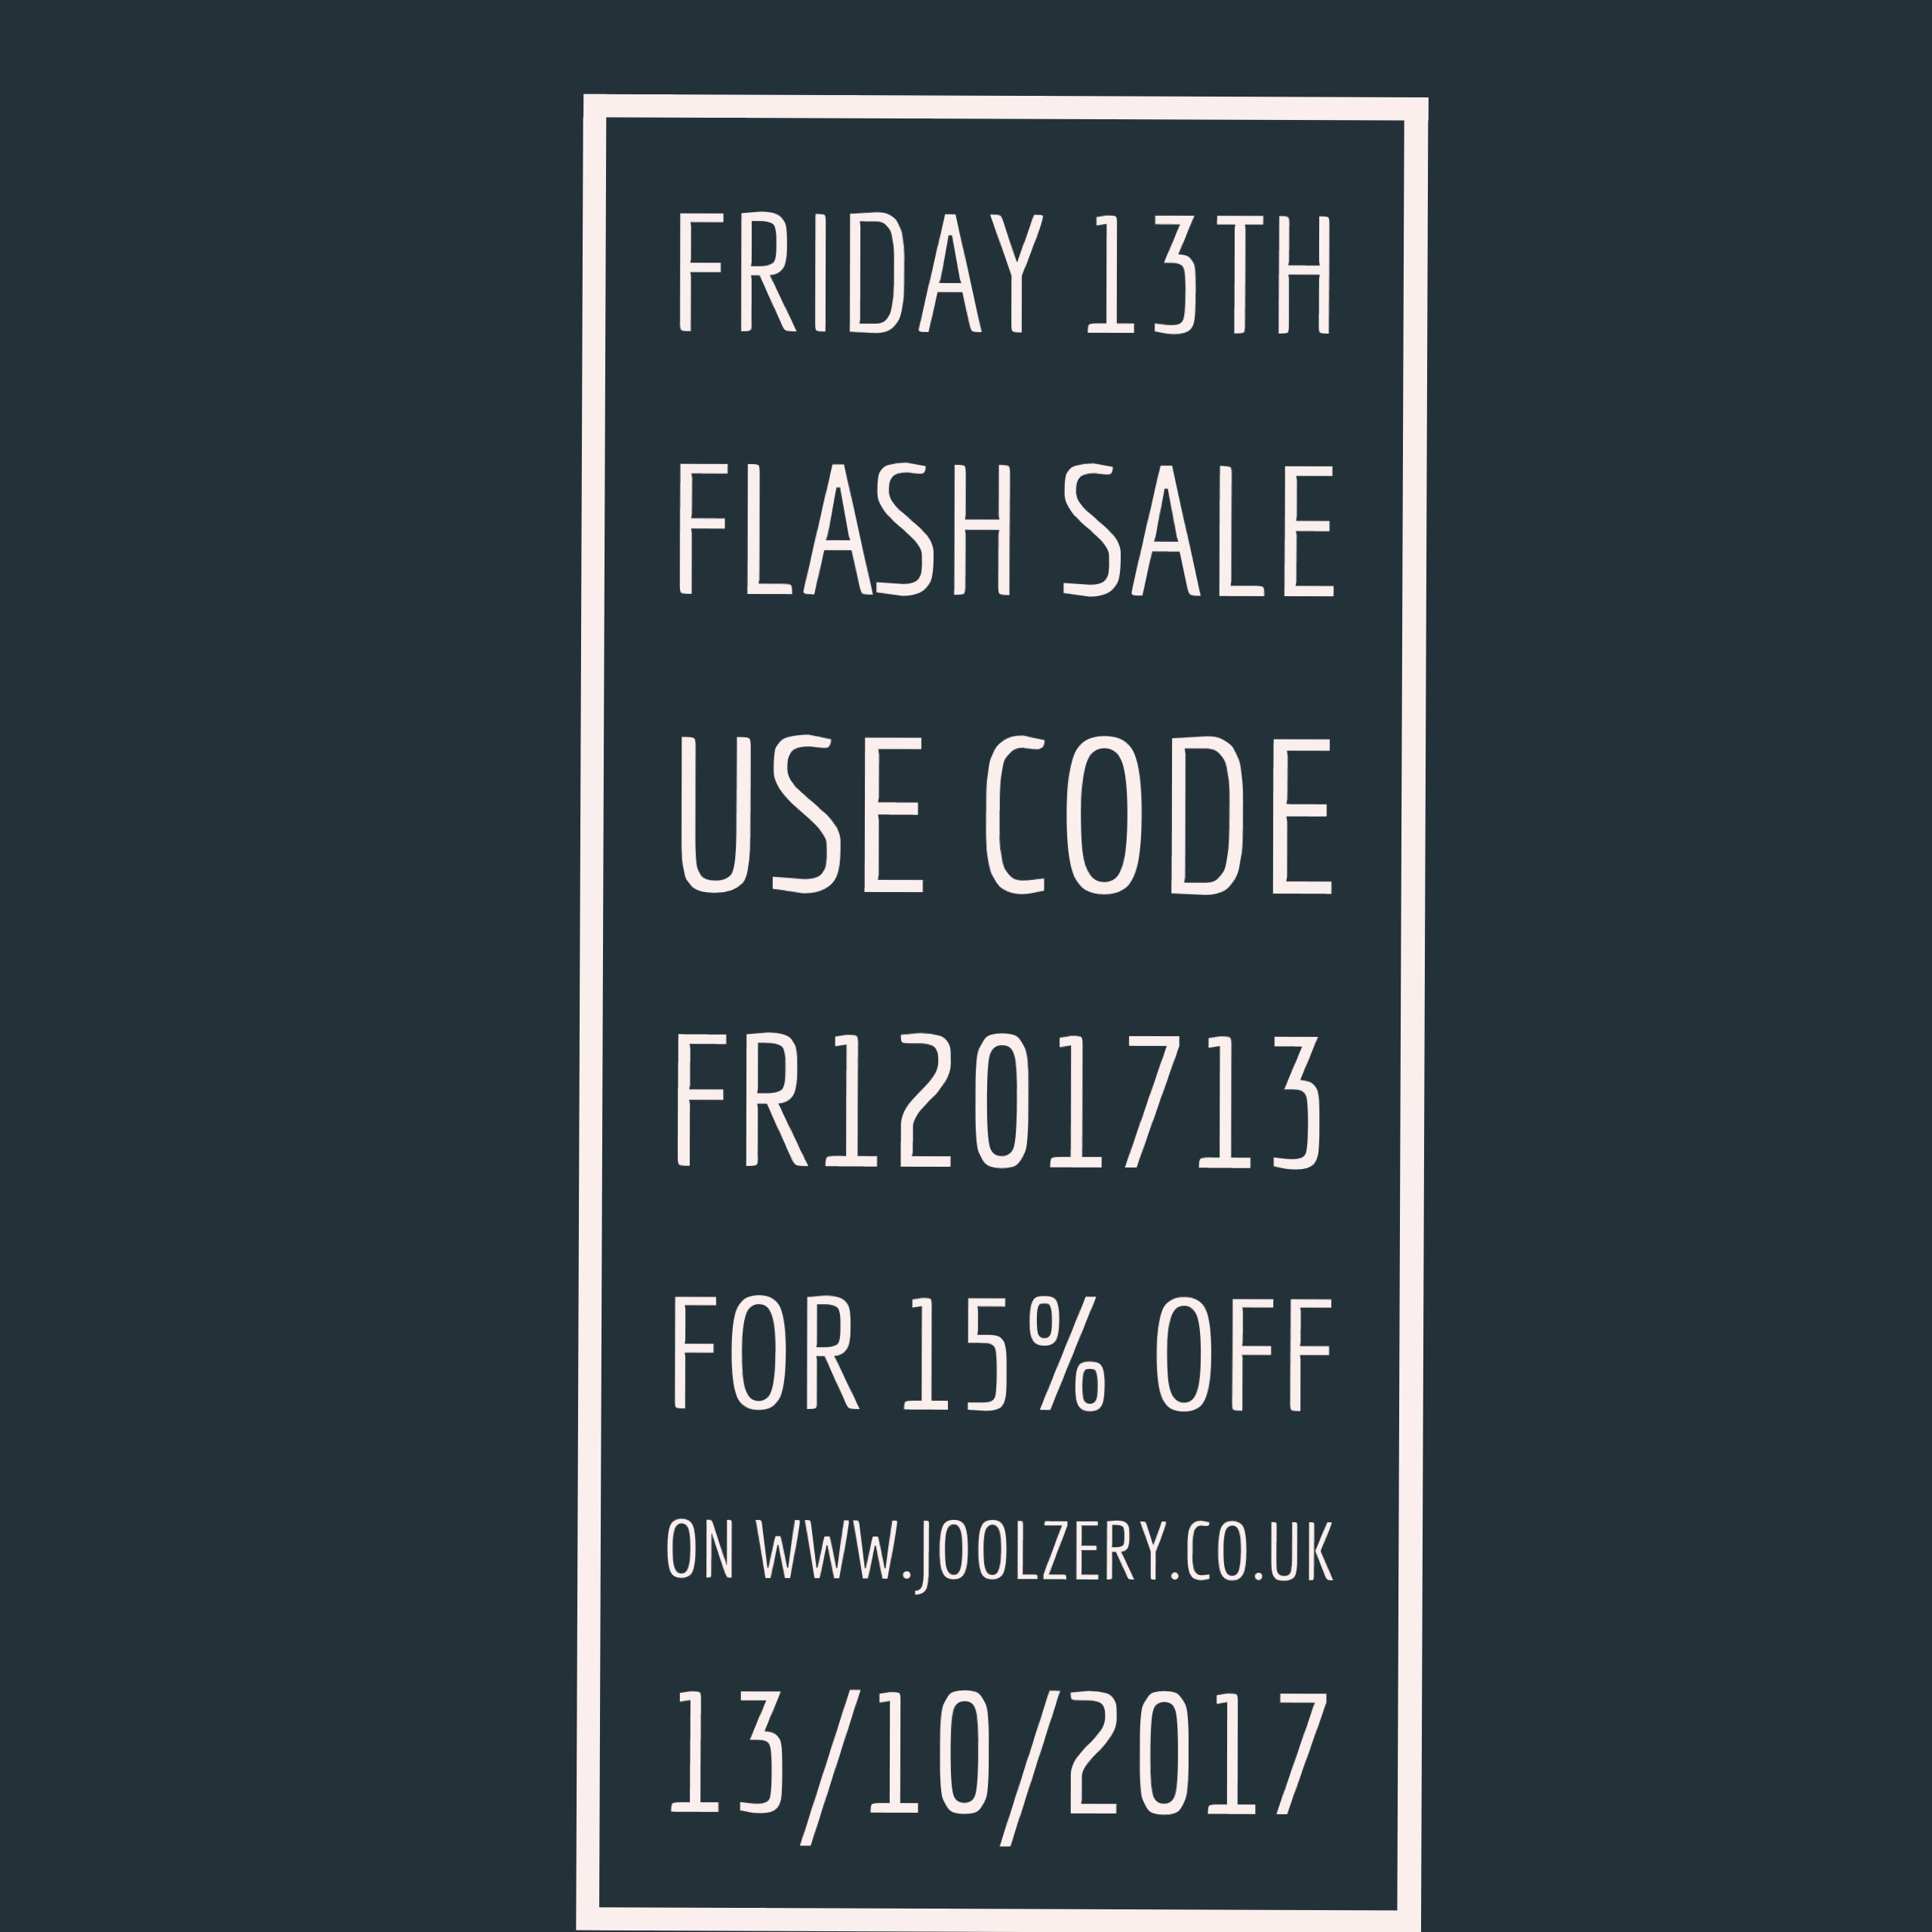 Joolzery Friday the 13th Flash Sale Code